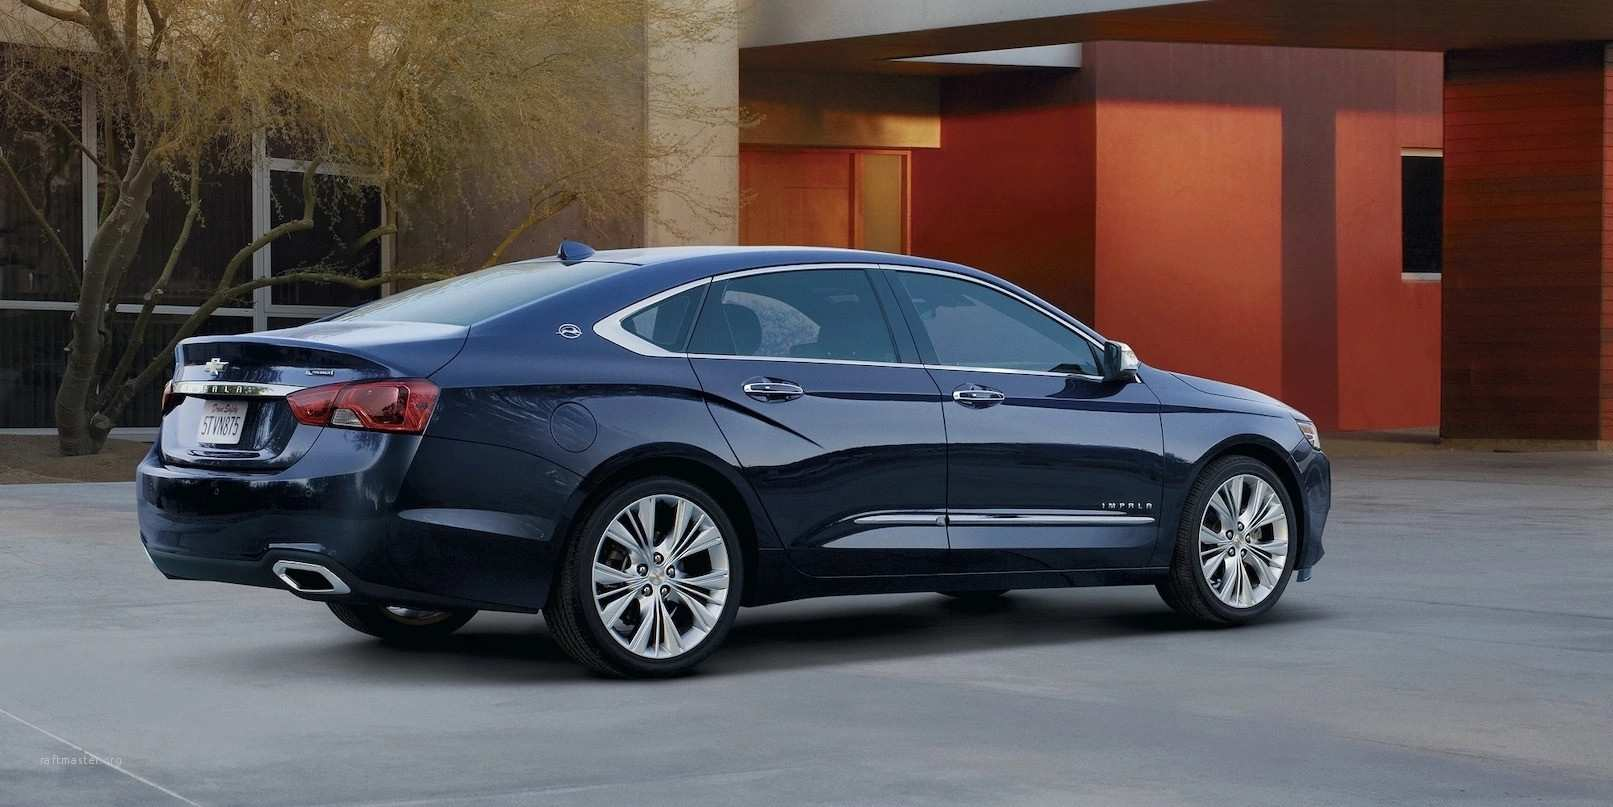 30 New 2019 Chevy Impala Ss Ltz Coupe Pricing